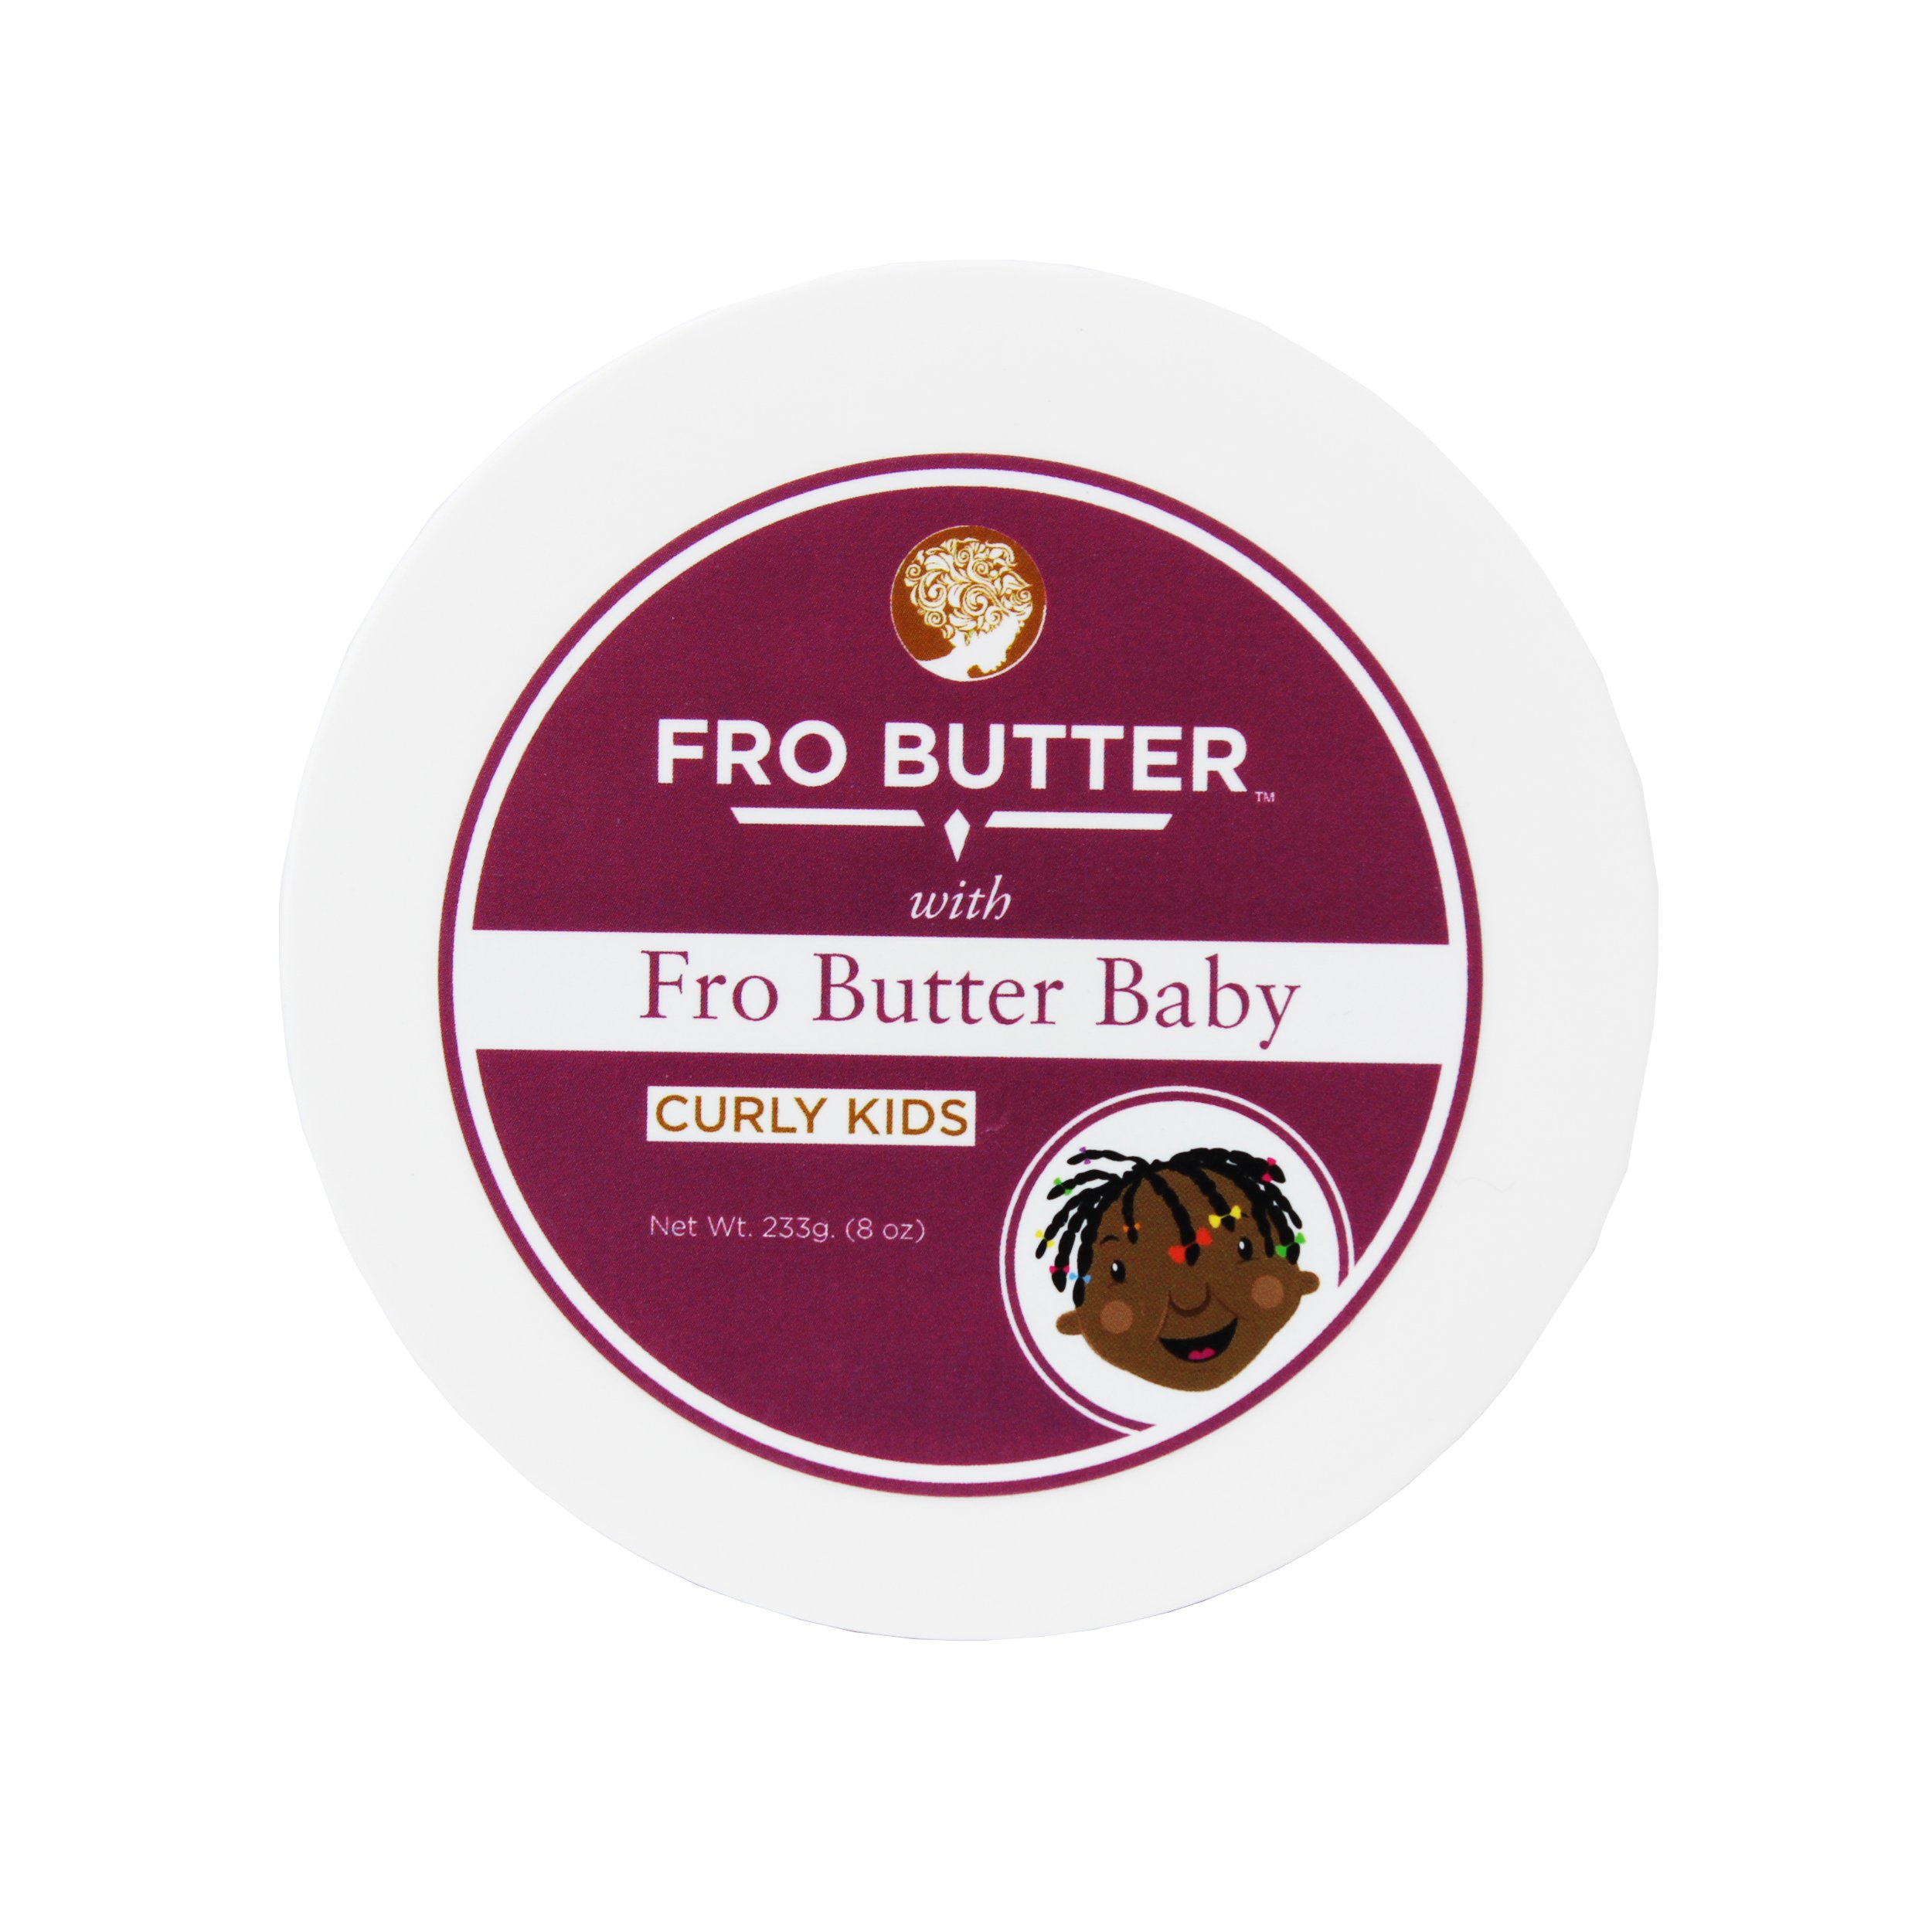 Fro Butter Baby Hair Detangler | All-Natural, Organic & Vegan Friendly | With Fro Butter & Nourishing Extracts | Stop Itching & Dandruff| Ideal For Curly Hair, Kids Of All Ages|Sulfate & Paraben-Free